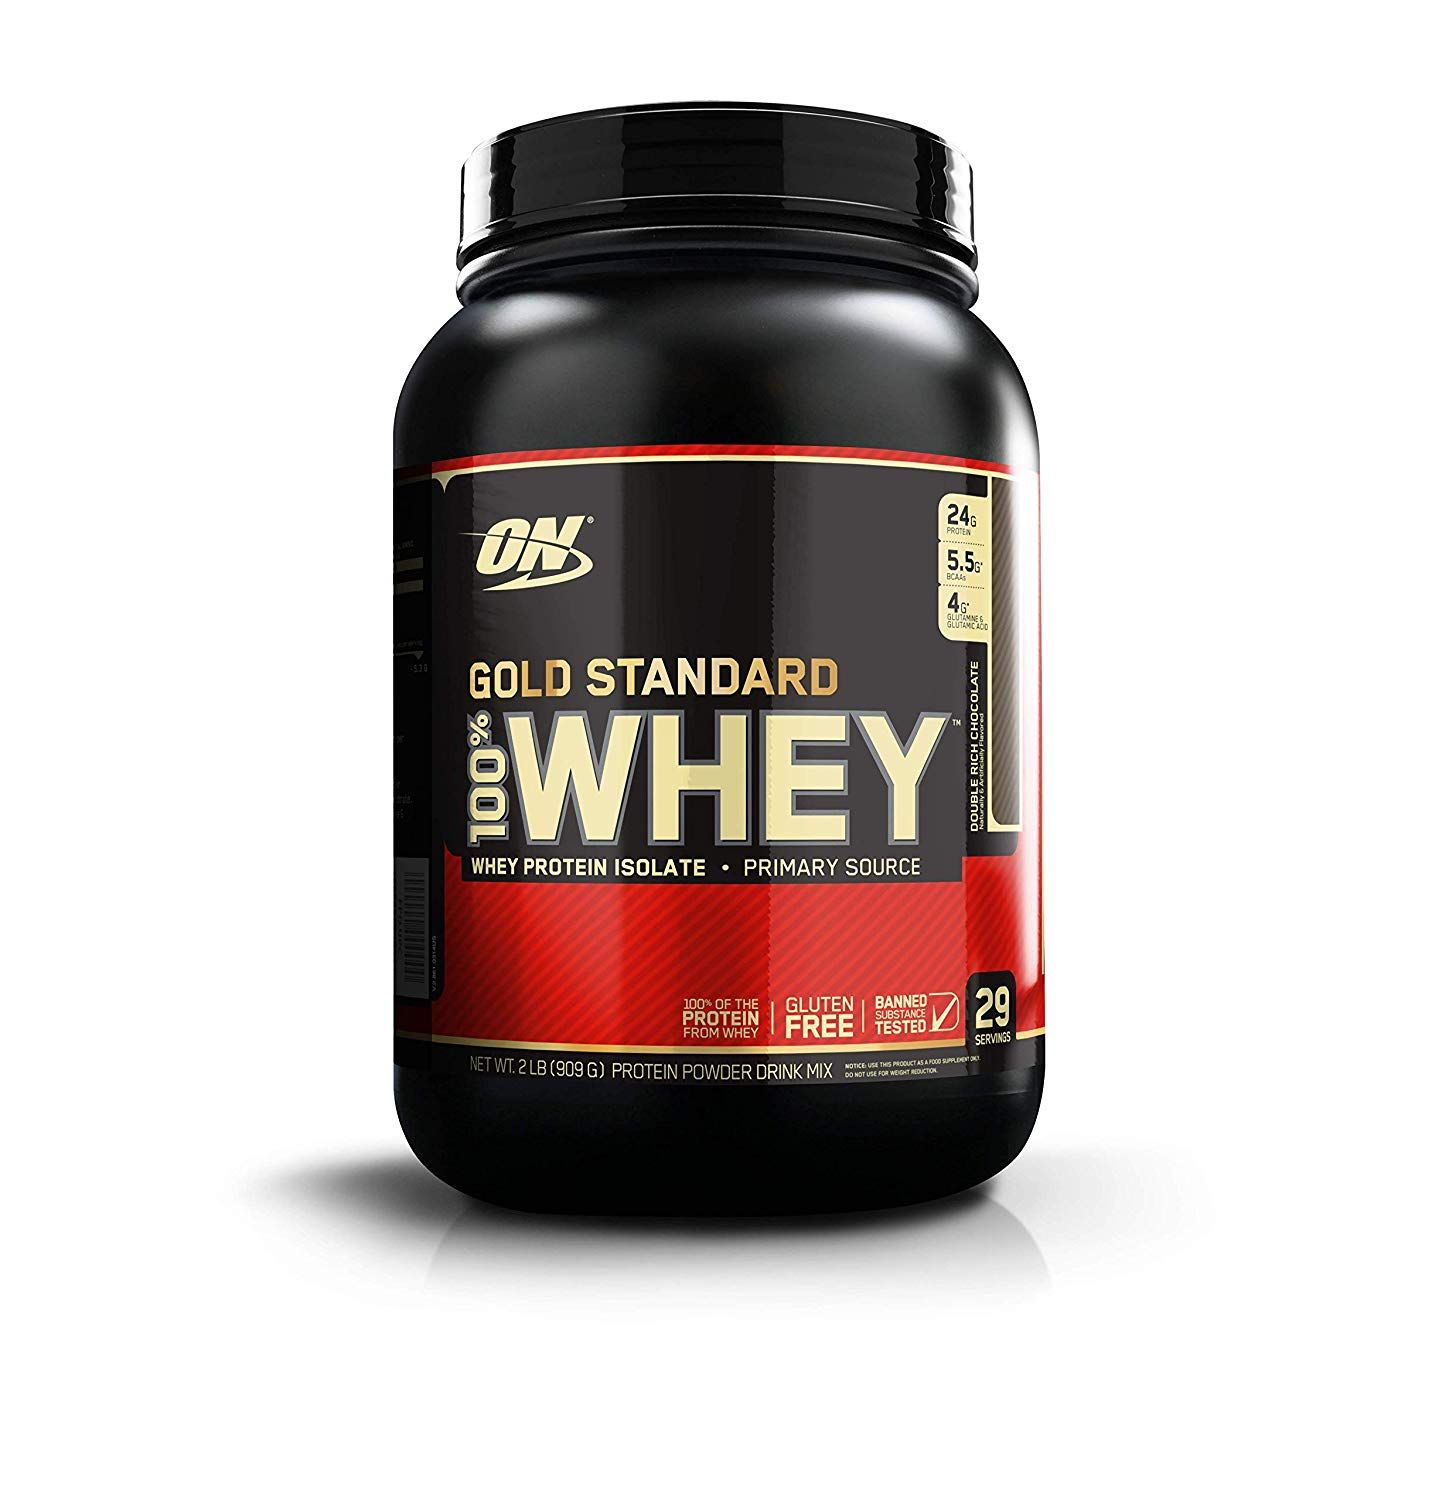 Optimum Nutrition On Gold Standard 100 Whey Protein Powder 2 Lbs Price 2 885 00 Gold Standard Whey Gold Standard Whey Protein Best Whey Protein